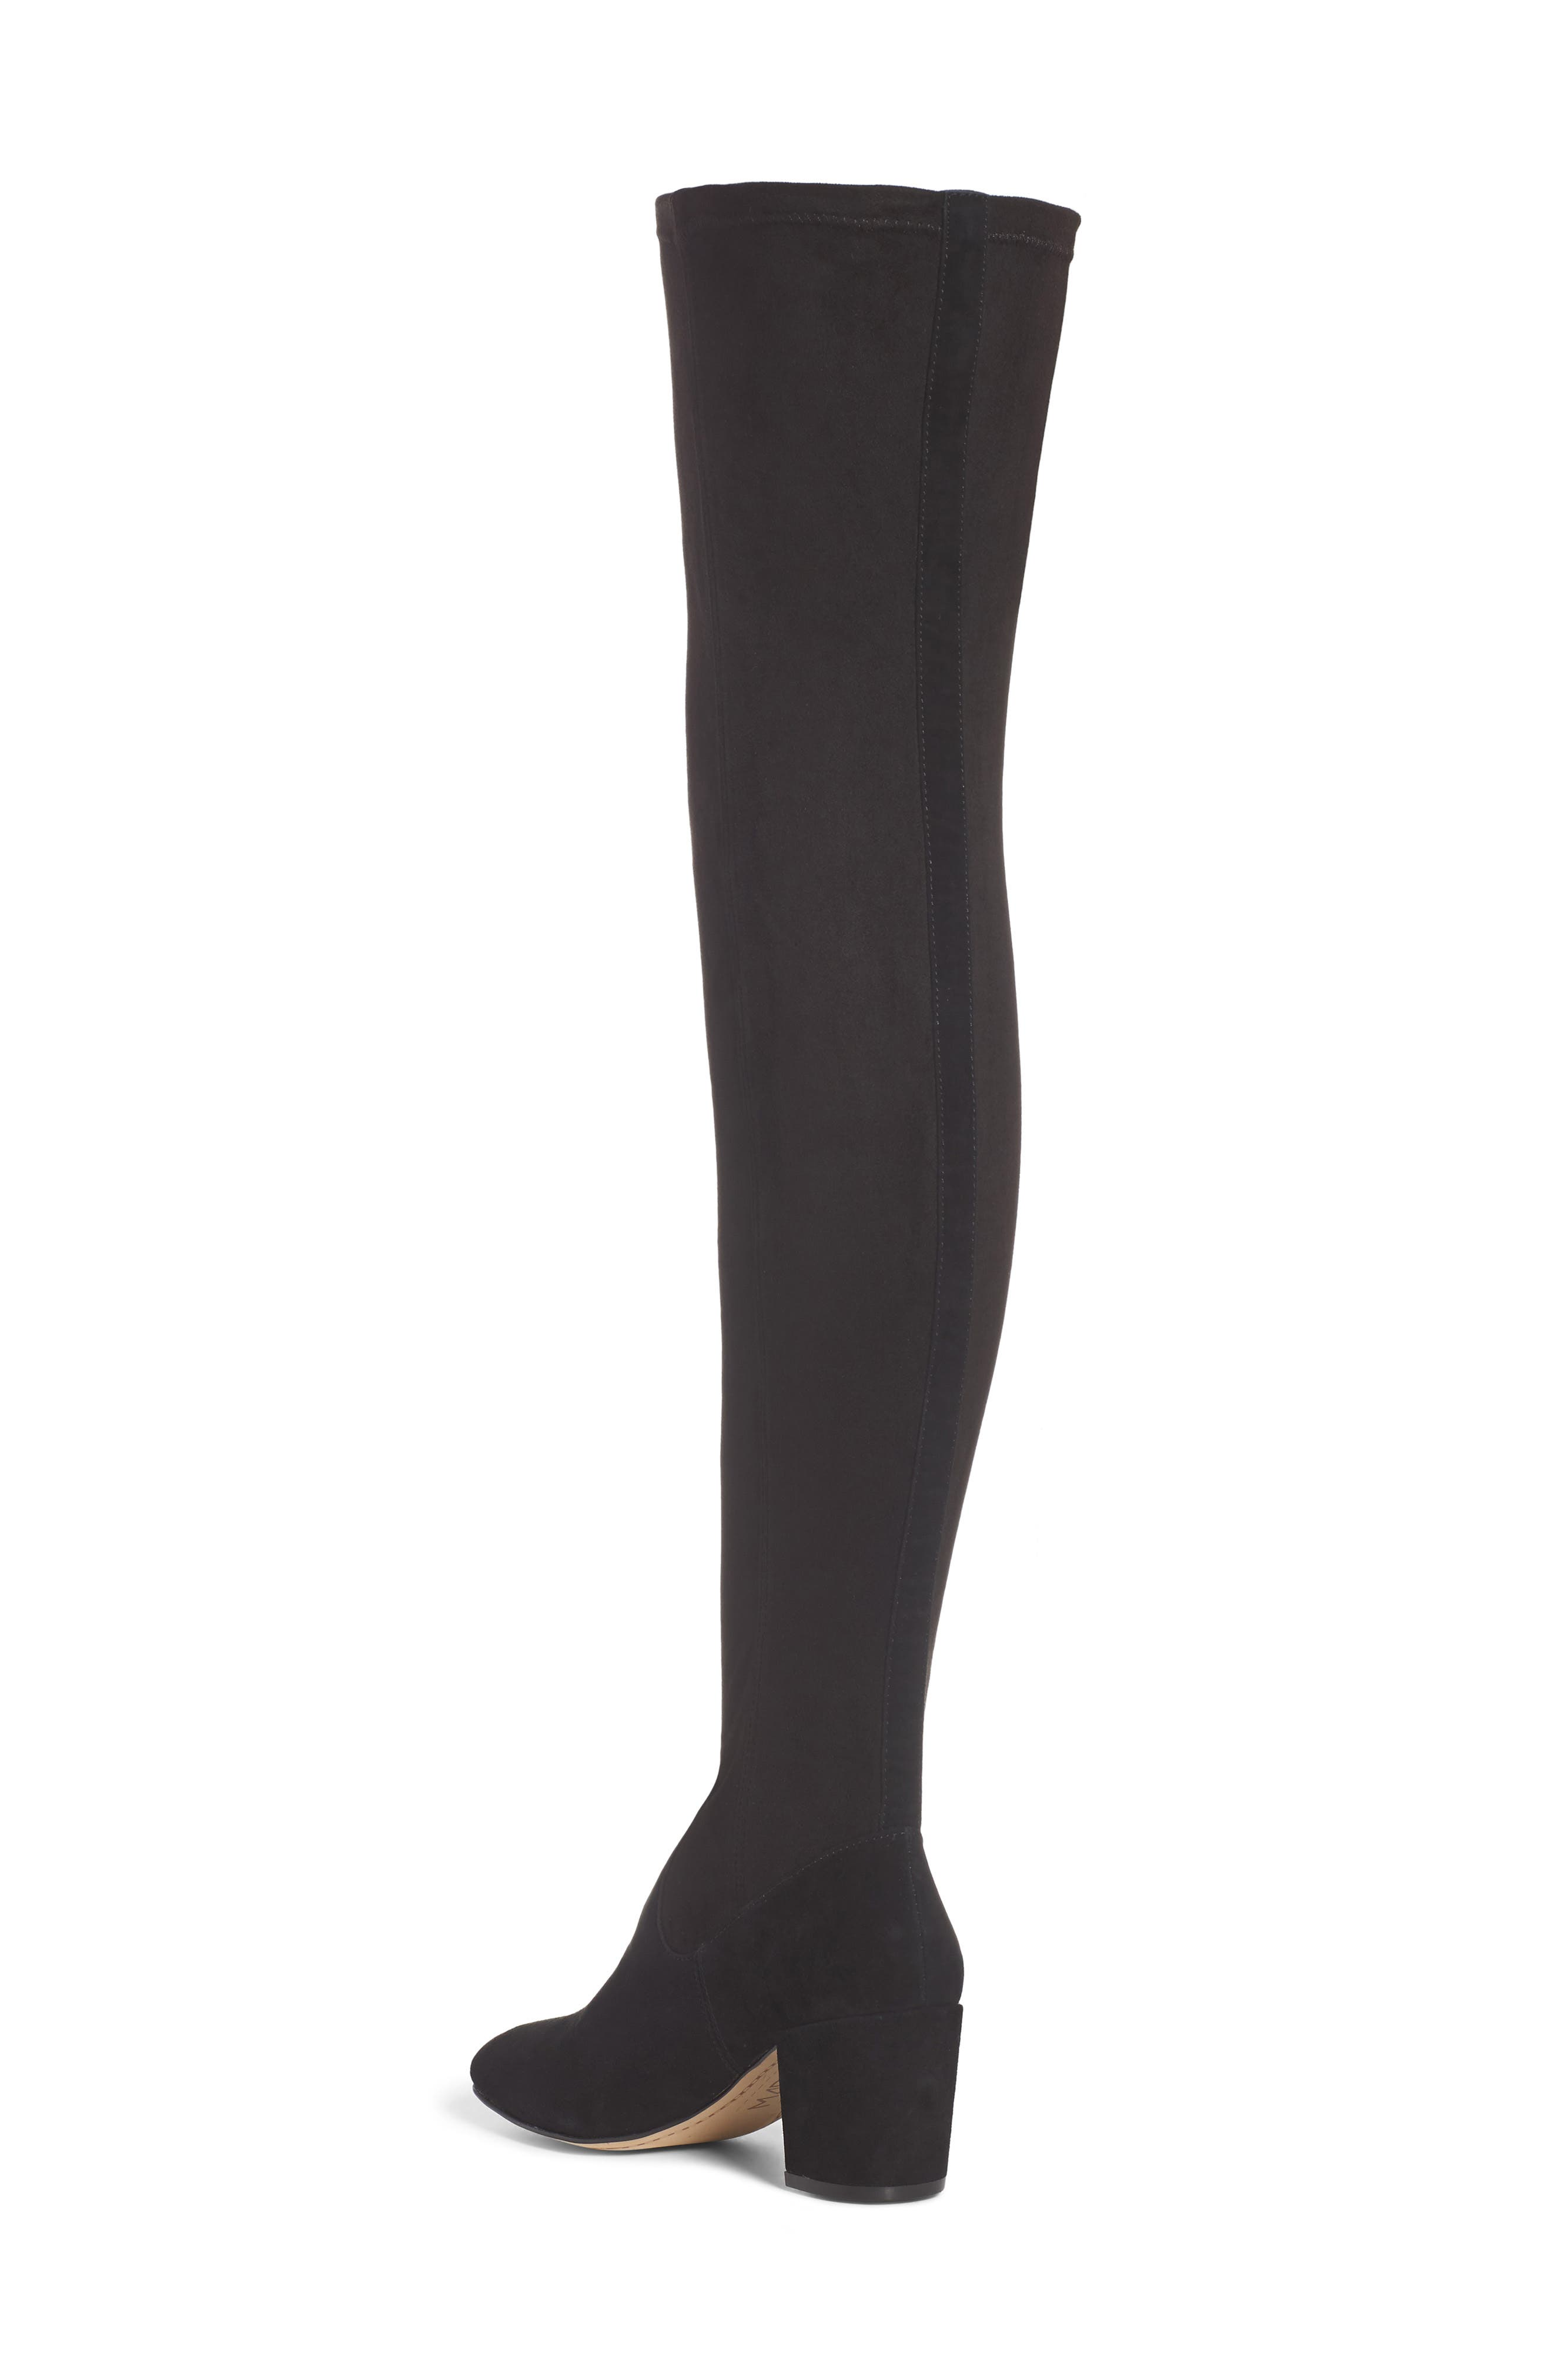 M4D3 Sobrina Over the Knee Boot,                             Alternate thumbnail 3, color,